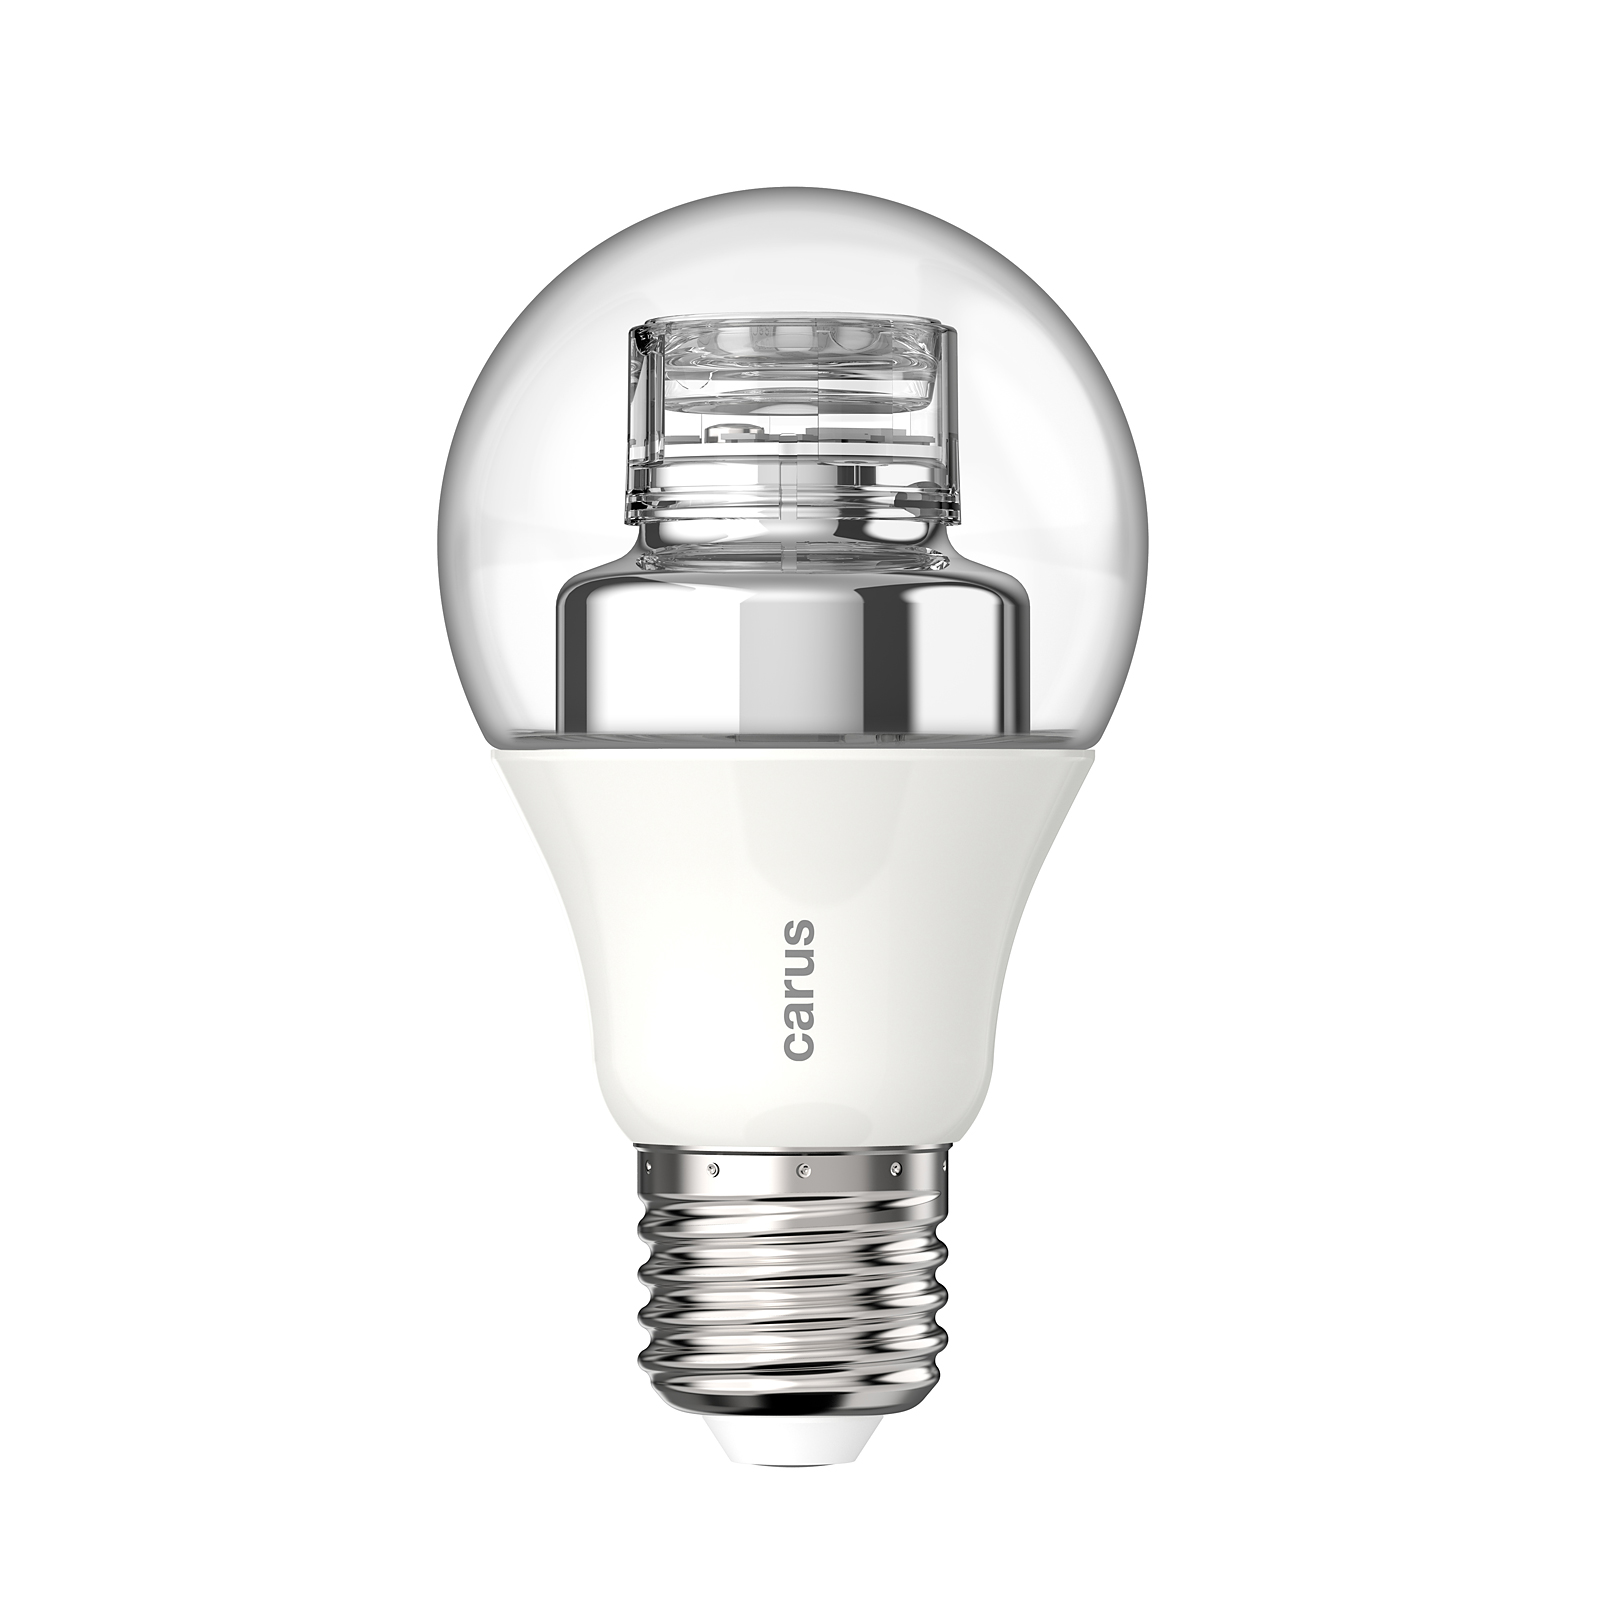 10880-LED-Lampe-CARUS-Dim-By-Click-8W-E27-2700K-Warmweiss-1